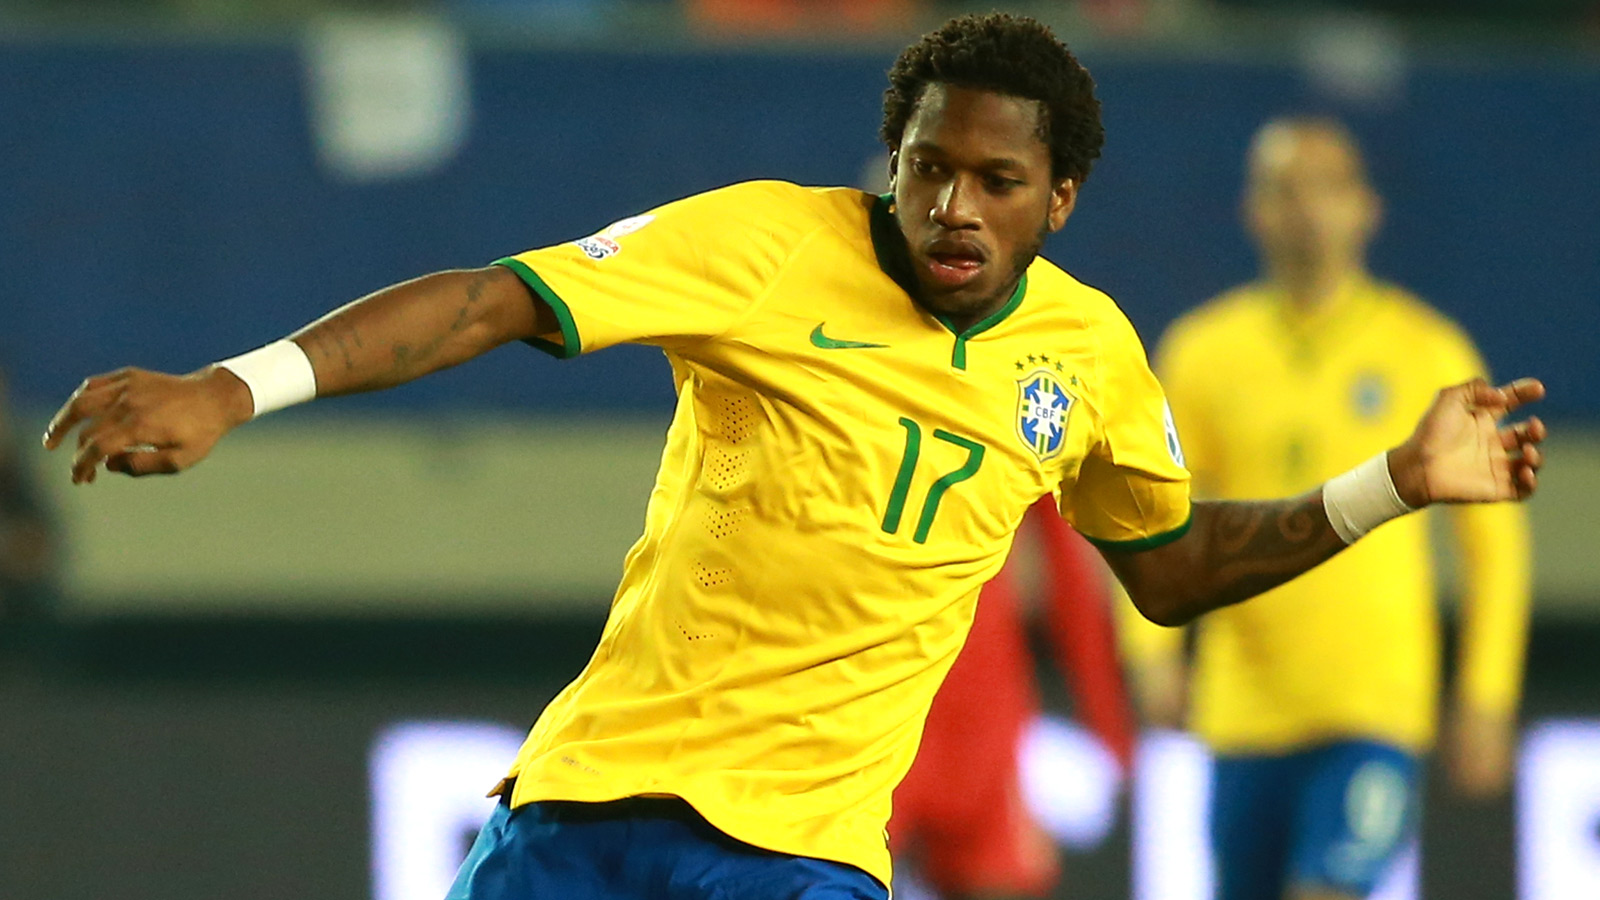 Brazil midfielder Fred banned for one year for doping in Copa America